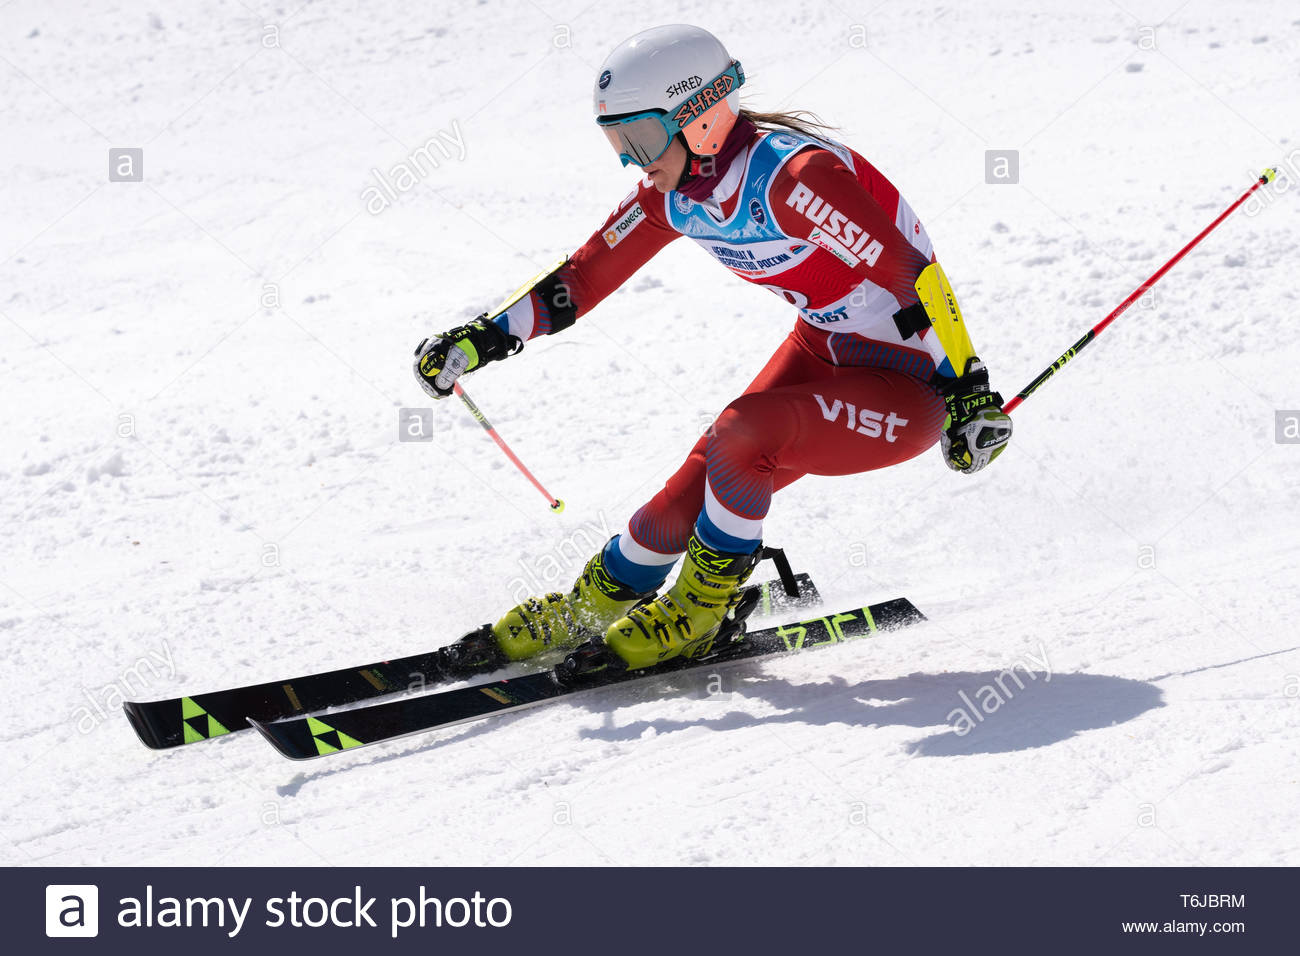 KAMCHATKA PENINSULA, RUSSIAN FEDERATION - APRIL 1, 2019: Mountain skier Sofya Krokhina (Moscow) skiing down snowy mountain slope. Russian Women's Alpi - Stock Image